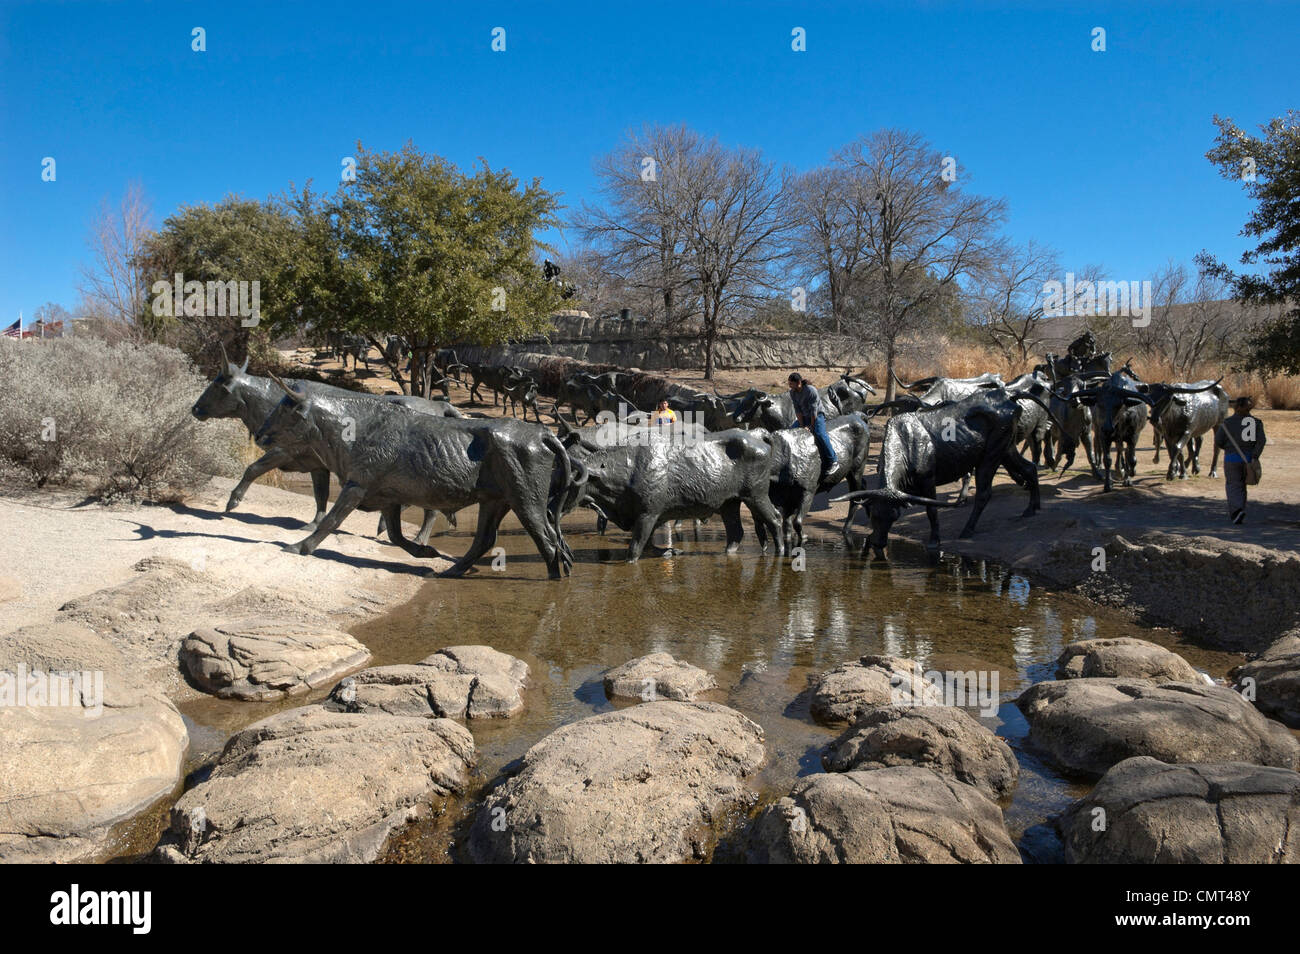 Texas - Cattle Drive sculpture in Pioneer Plaza, Dallas - Stock Image